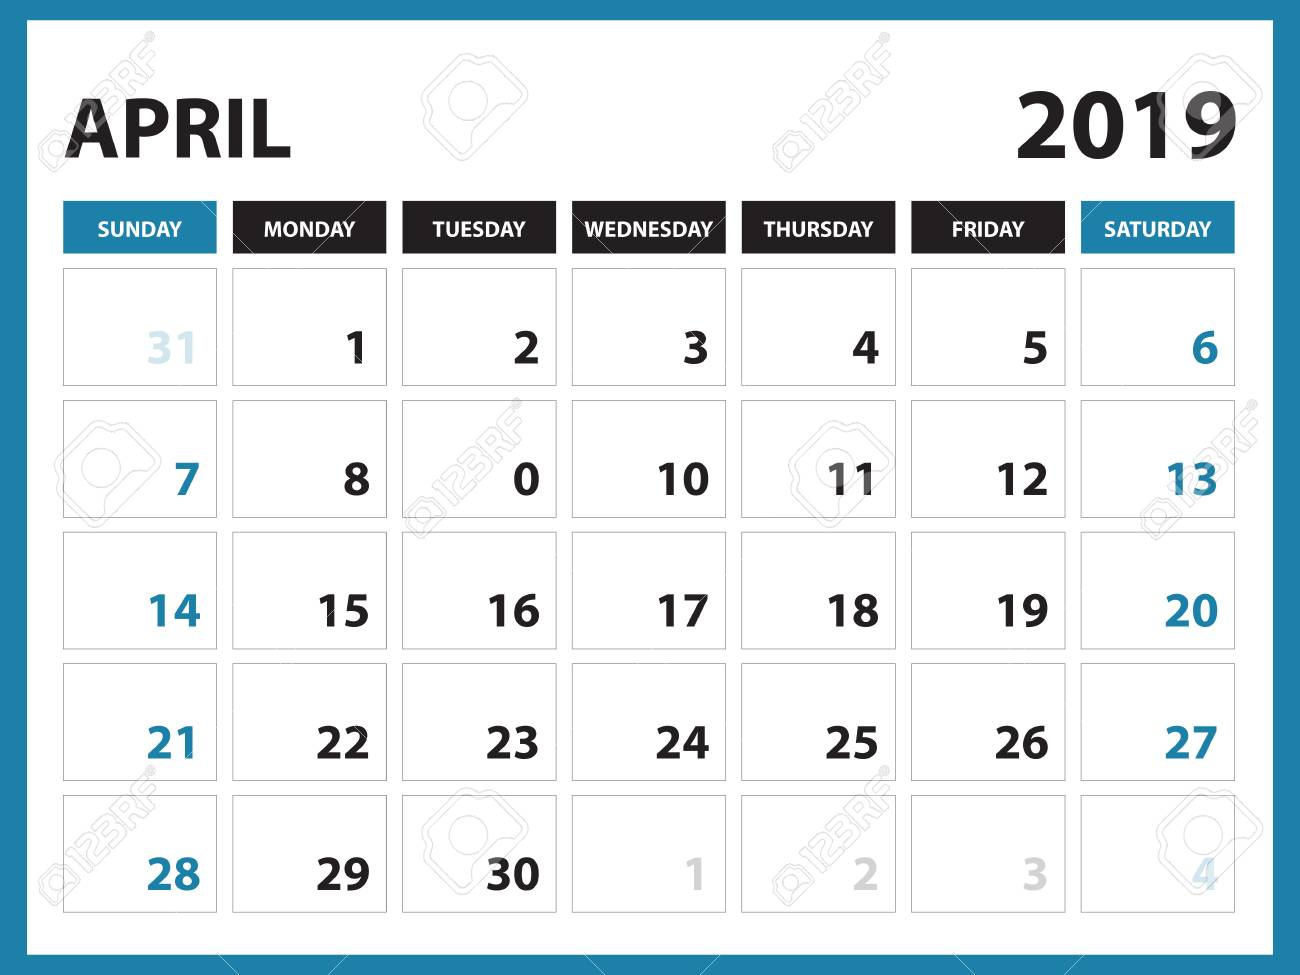 Free Printable Calendar April 2019 Cablo Commongroundsapex Co